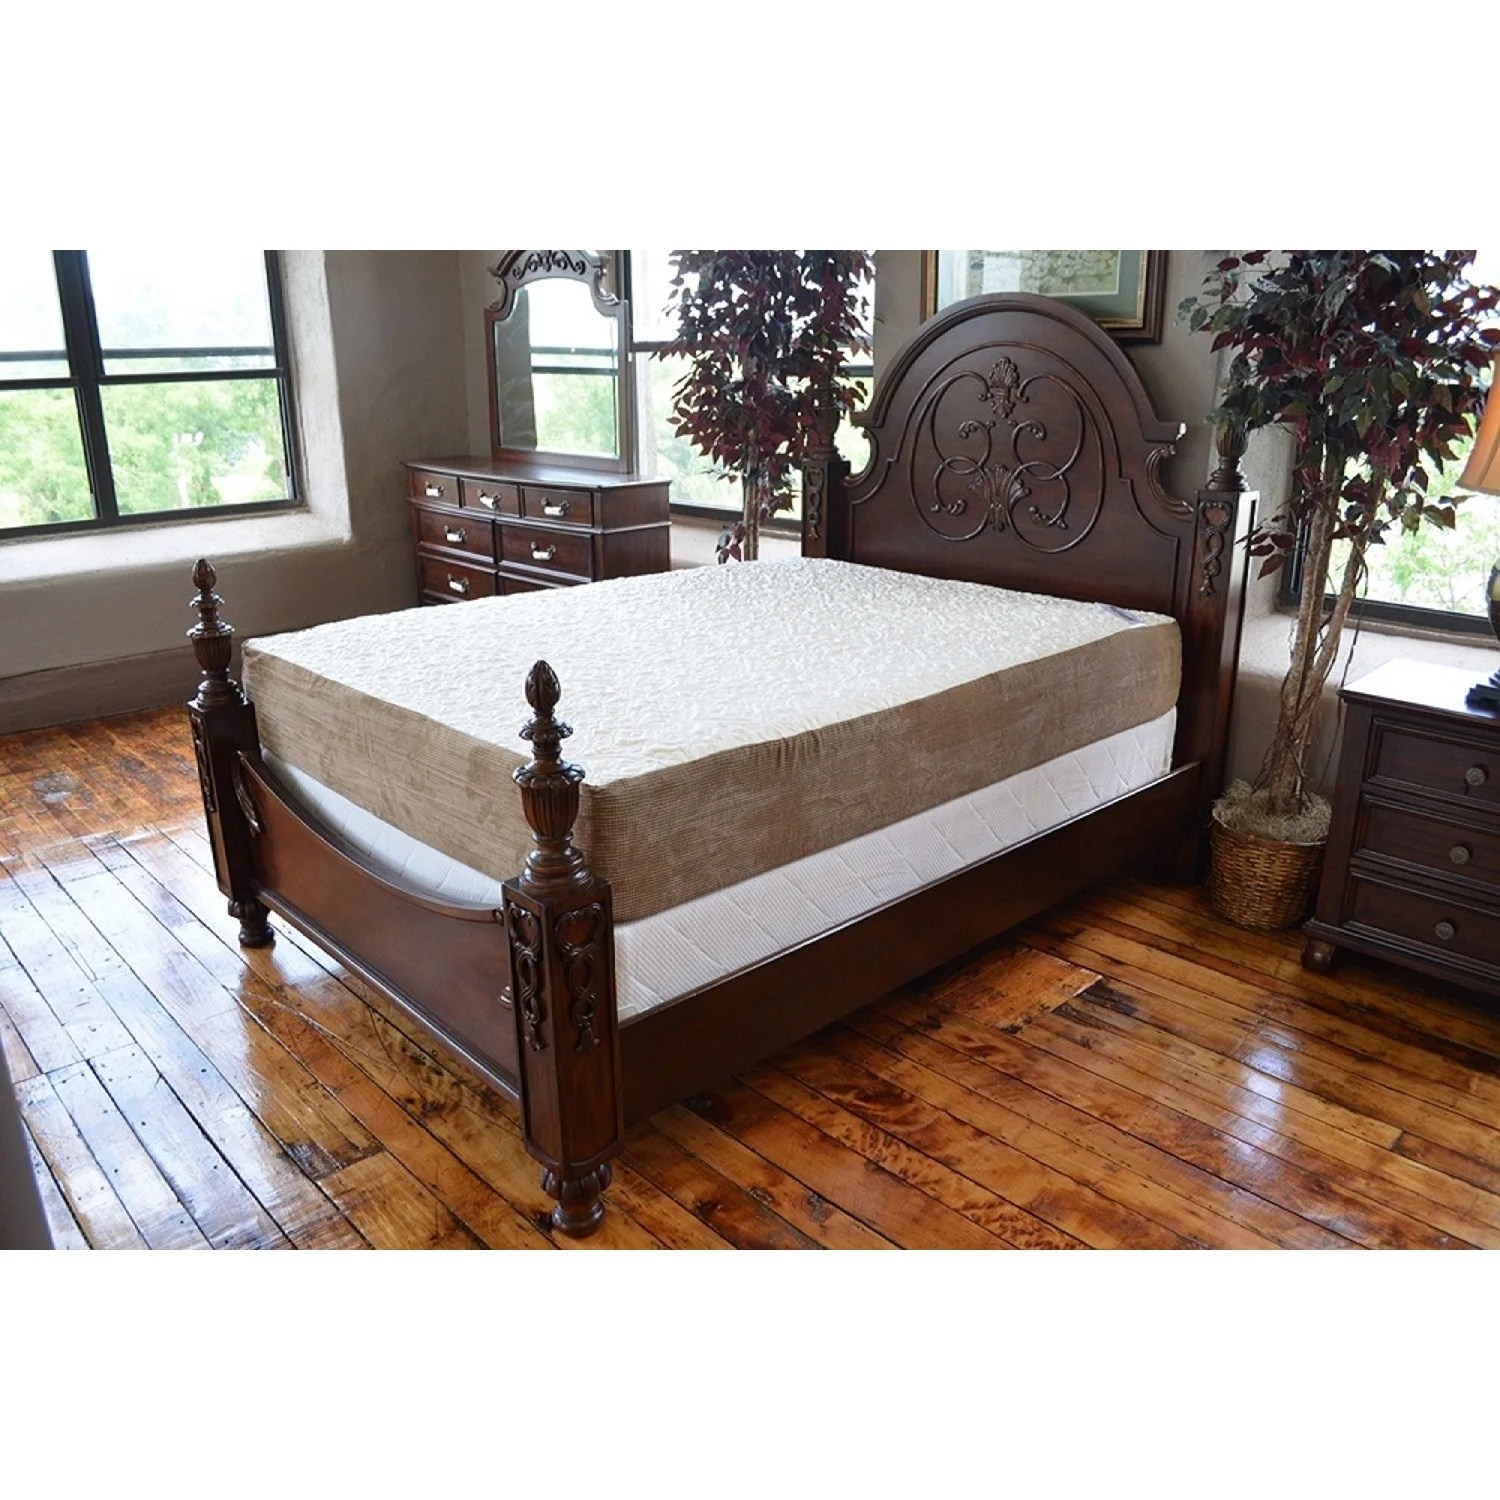 Snooze Bunk Beds Better Snooze Palatial Luxury 14 Inch California King Size Gel Memory Foam Mattress